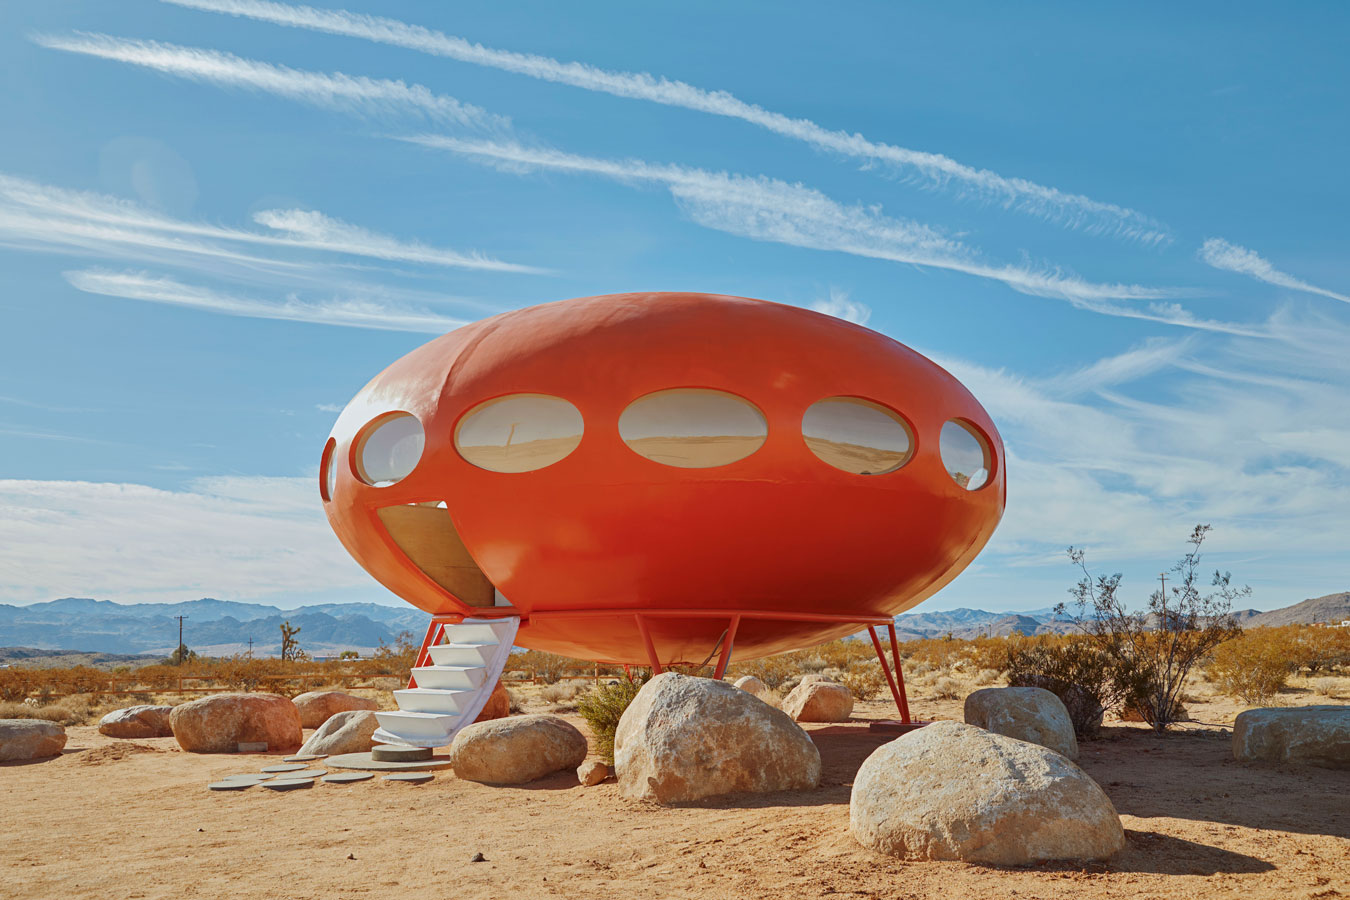 brightly-coloured-red-ufo-house-in-the-middle-of-a-desert